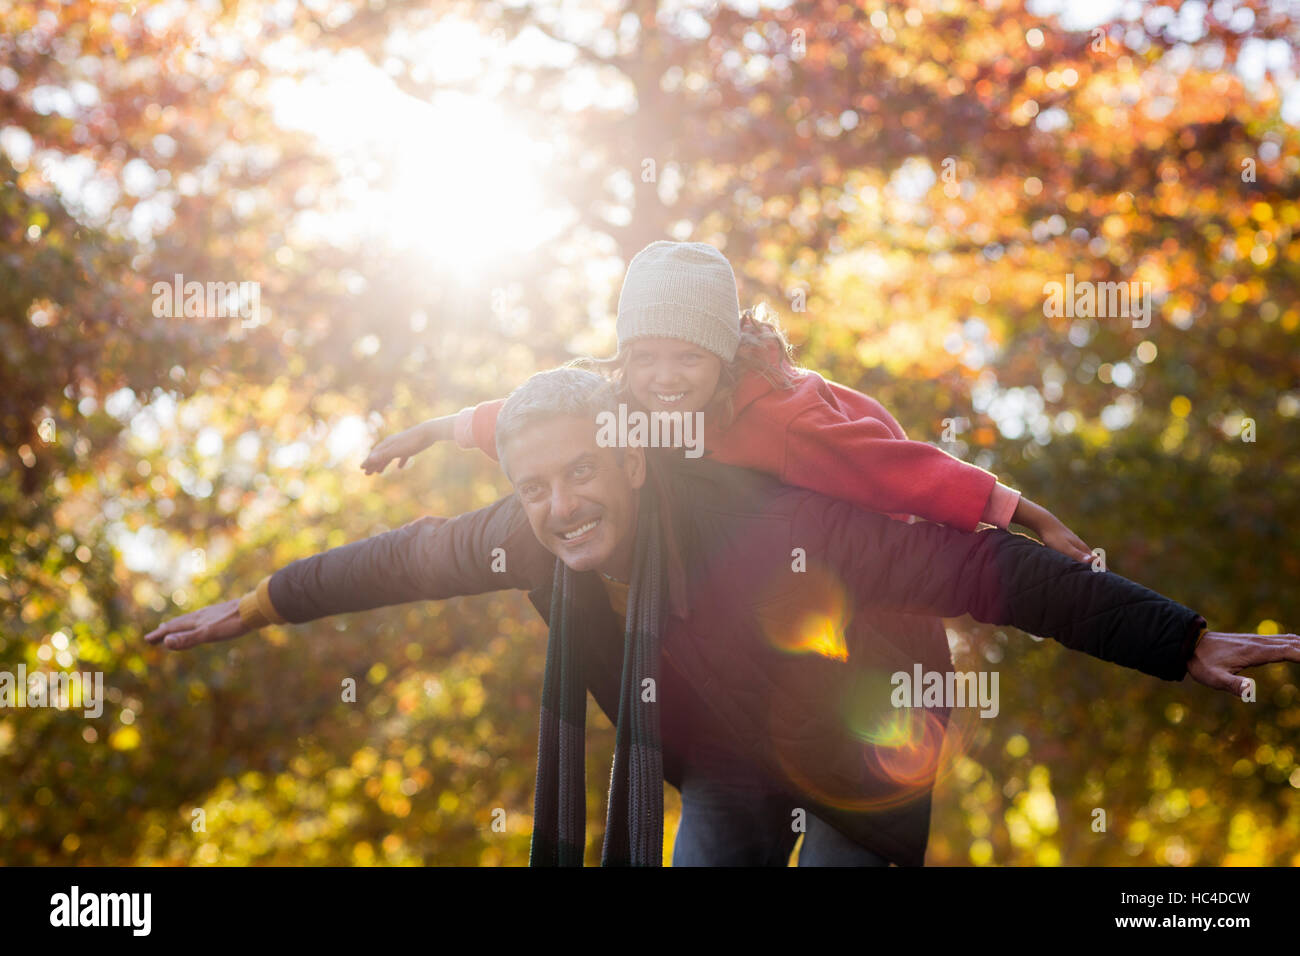 Playful father carrying daughter on back at park - Stock Image